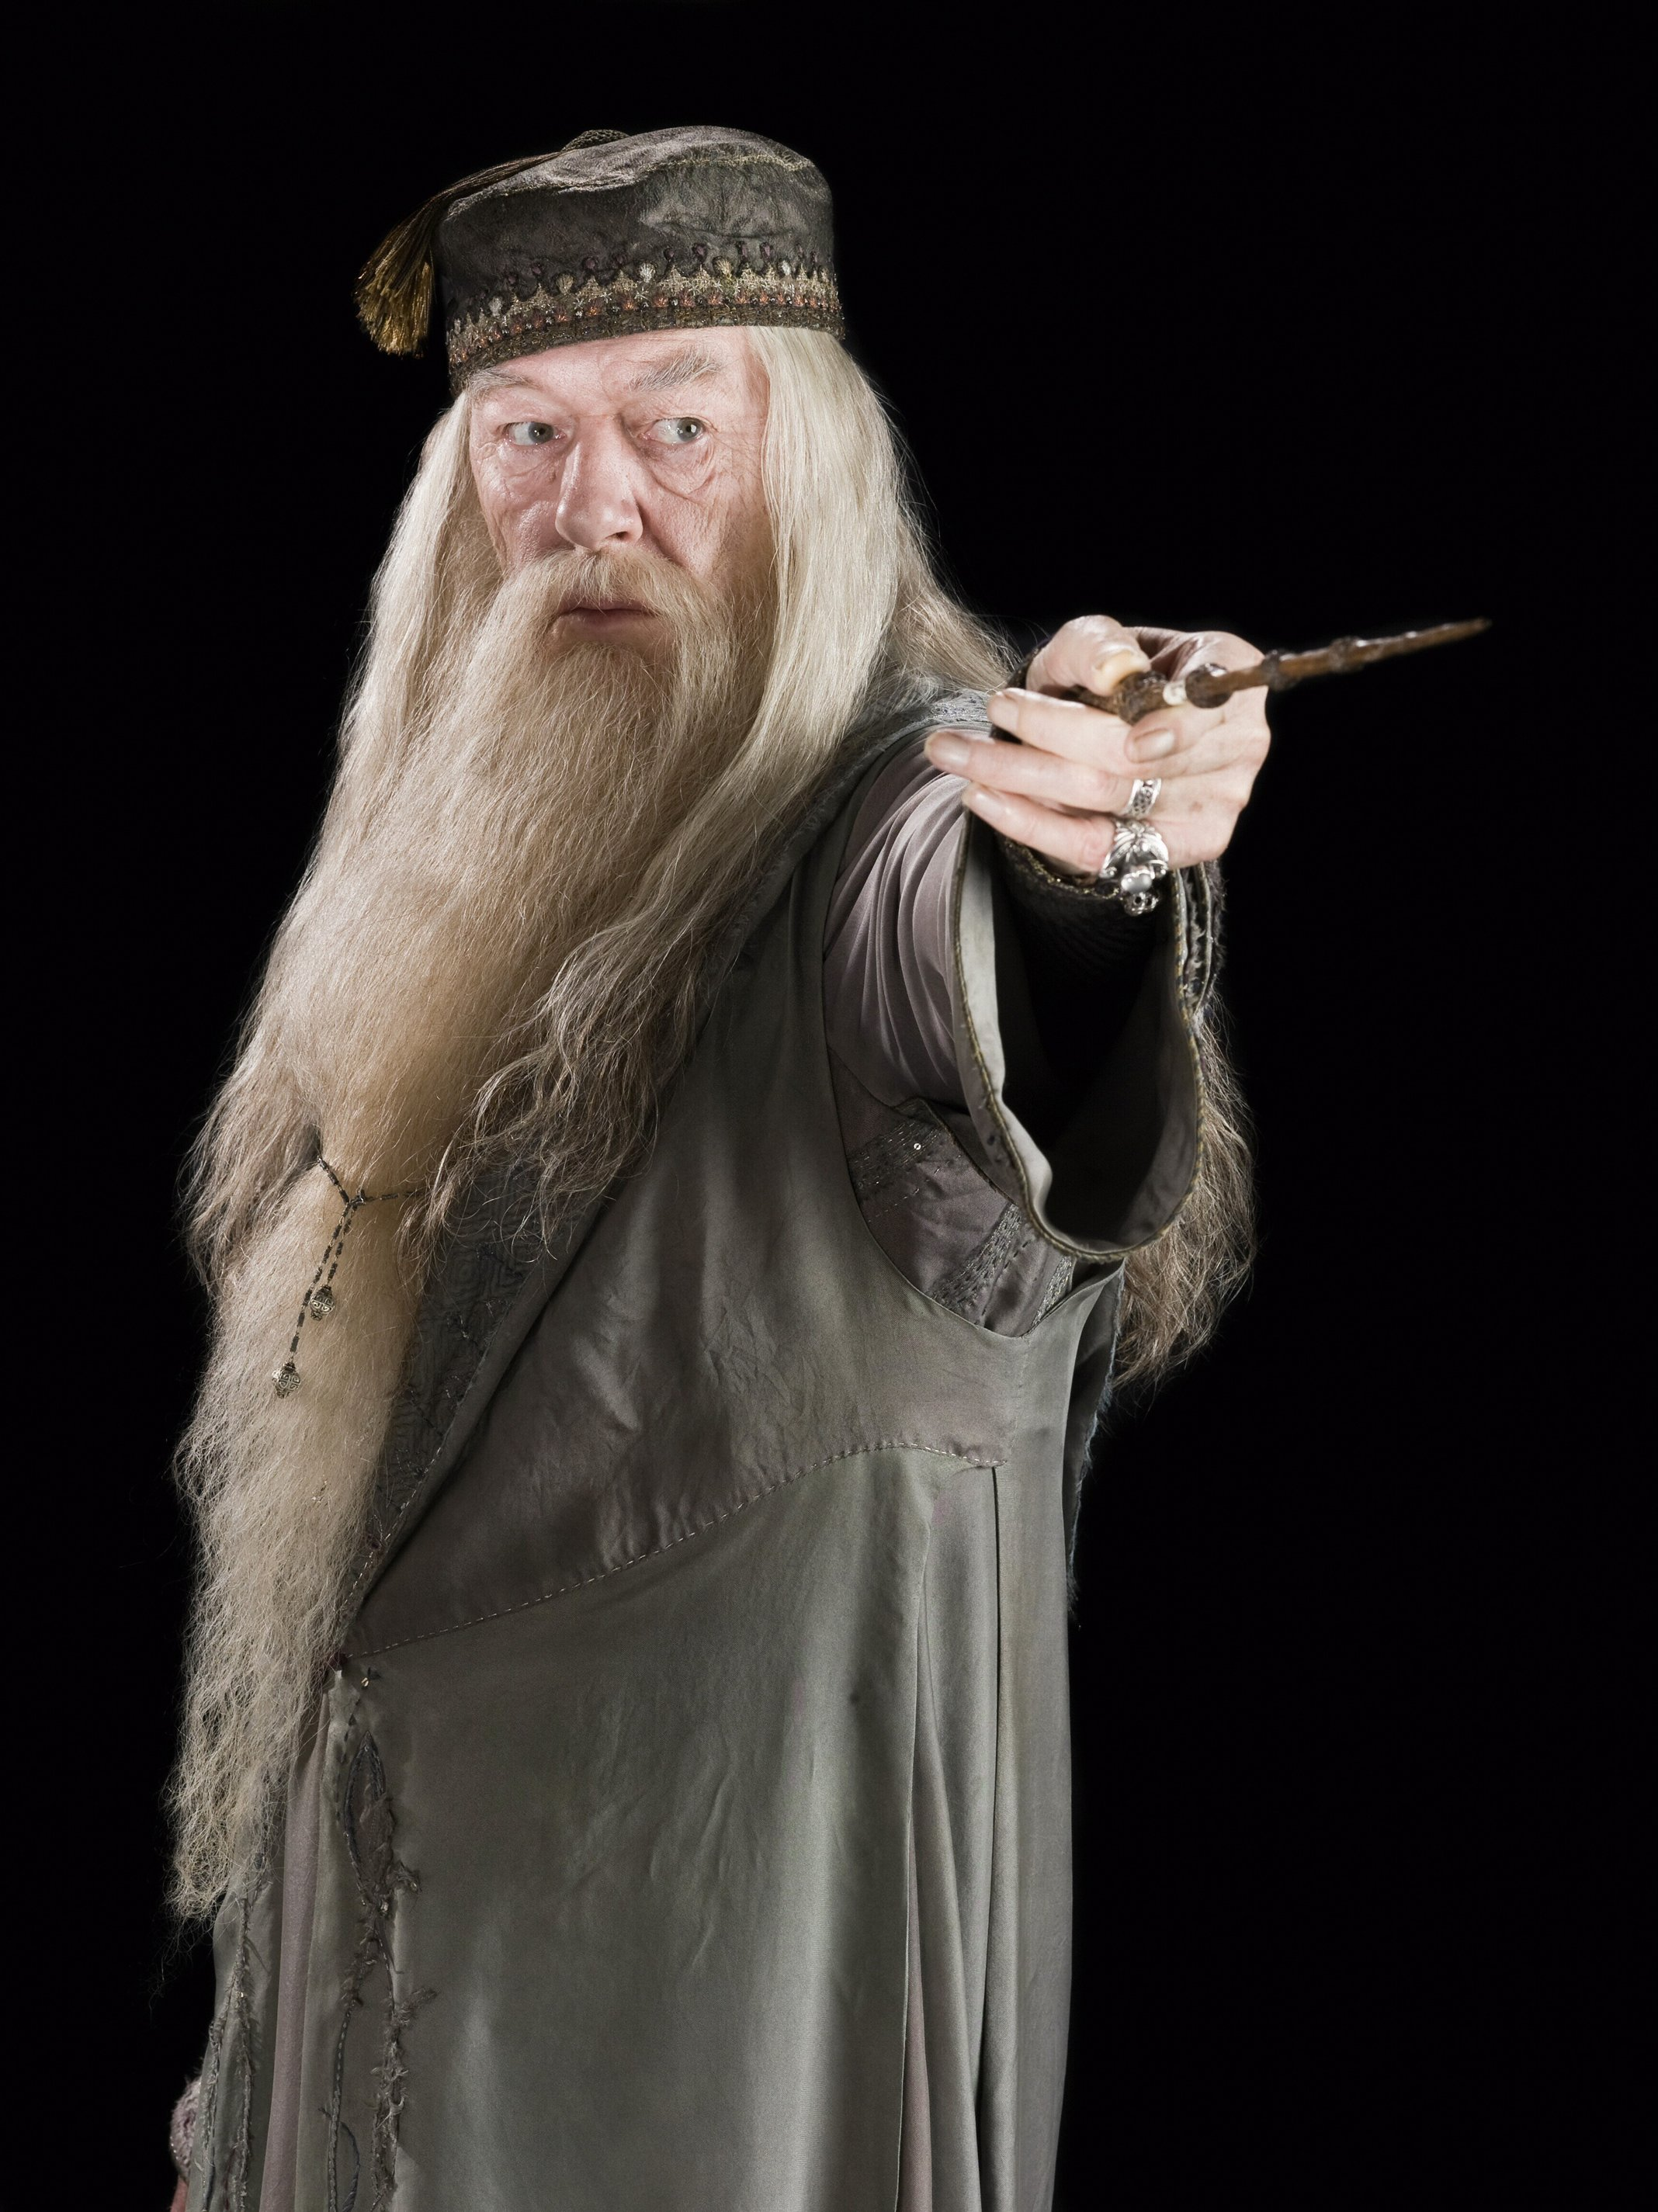 Albus dumbledore lucien maverick 39 s blog for Dumbledore with wand